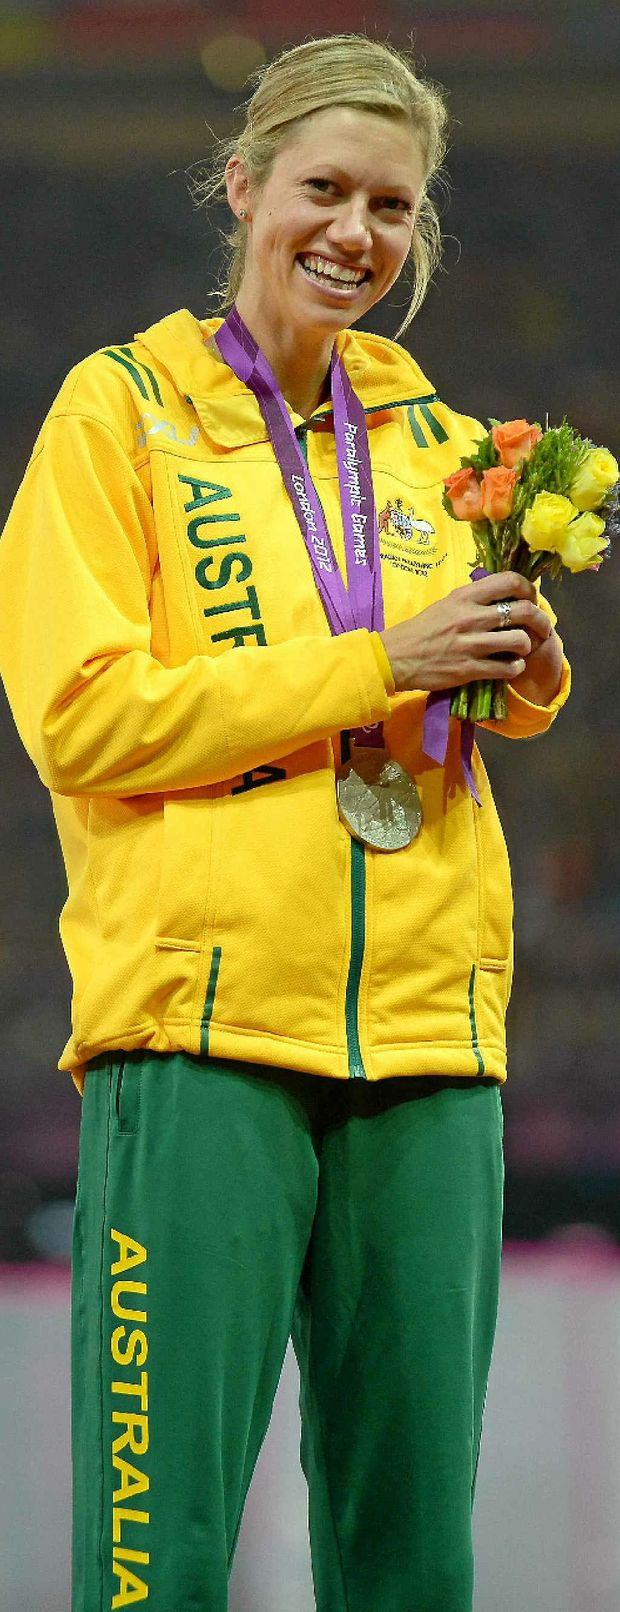 Carlee Beattie with her silver medal after the F46 long jump at the Paralympics.